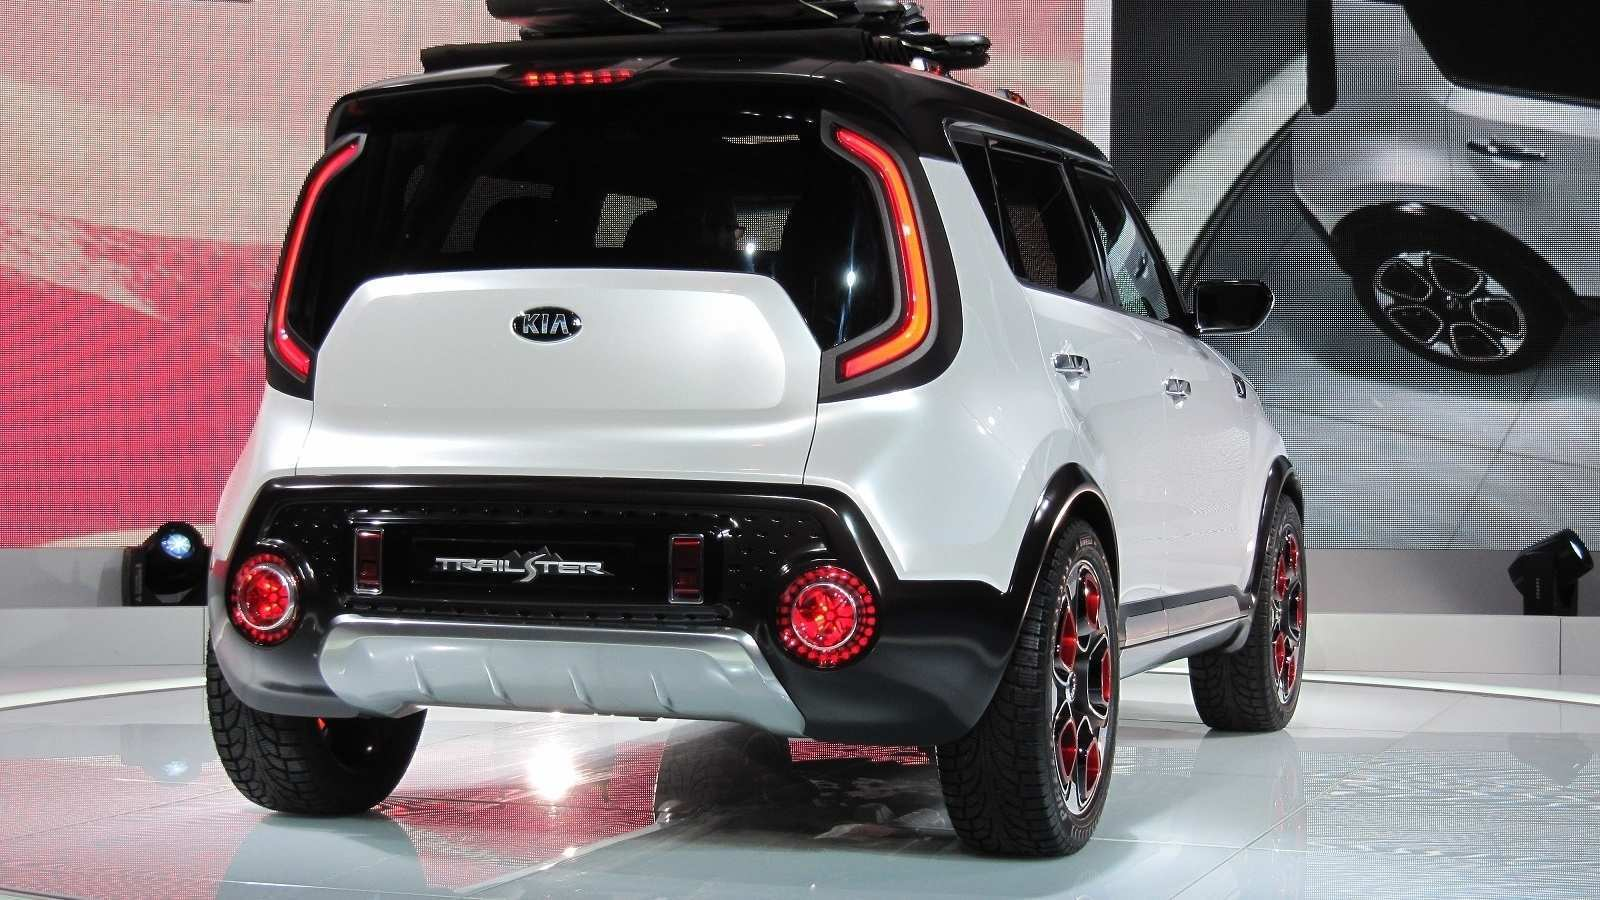 21 Gallery of The Kia Trailster 2019 Redesign Review with The Kia Trailster 2019 Redesign